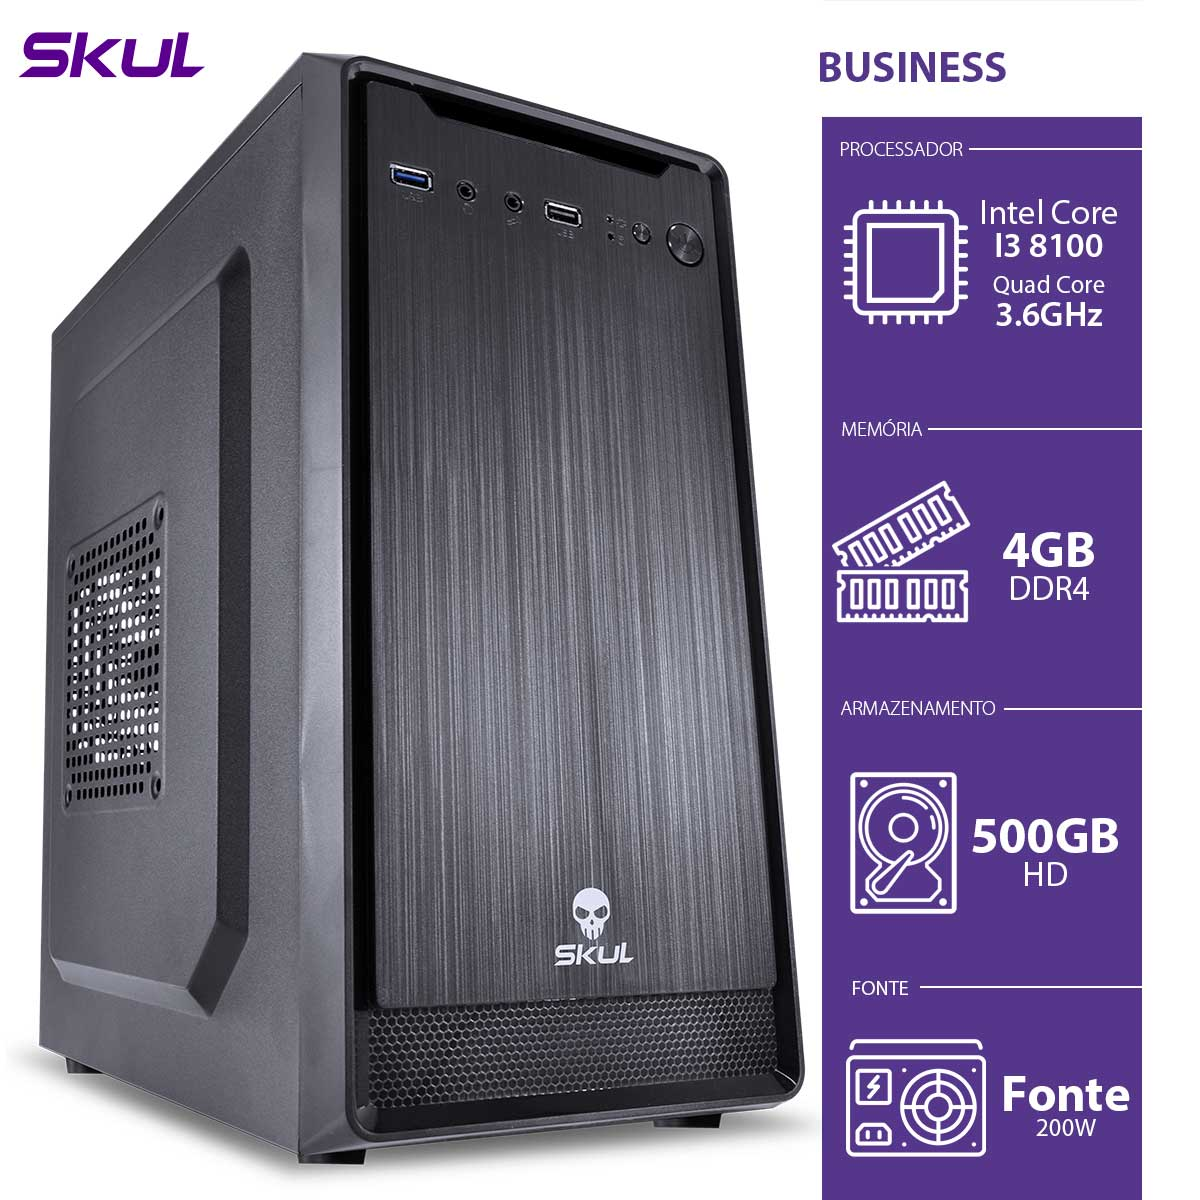 Computador Business B300 - I3-8100 3.6GHZ 4GB DDR4 HD 500GB HDMI/VGA Fonte 200W - B81005004